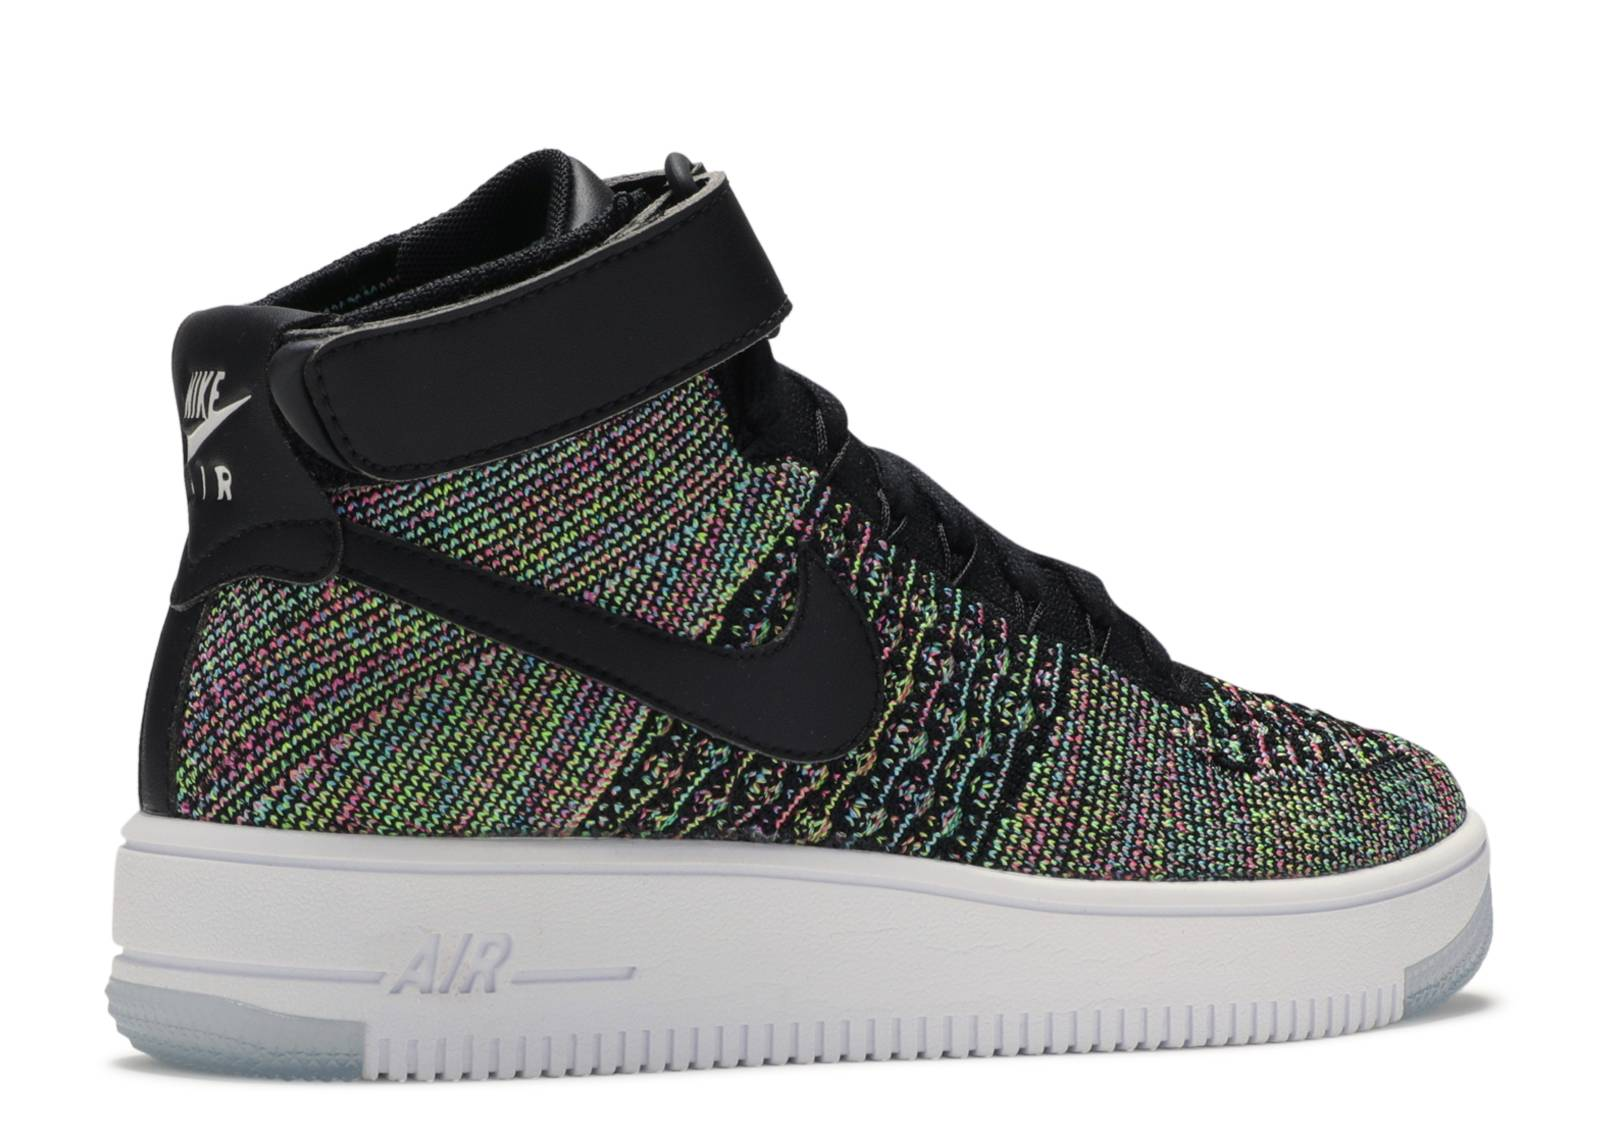 Nike Air Force 1 Ultra Flyknit Mid GS